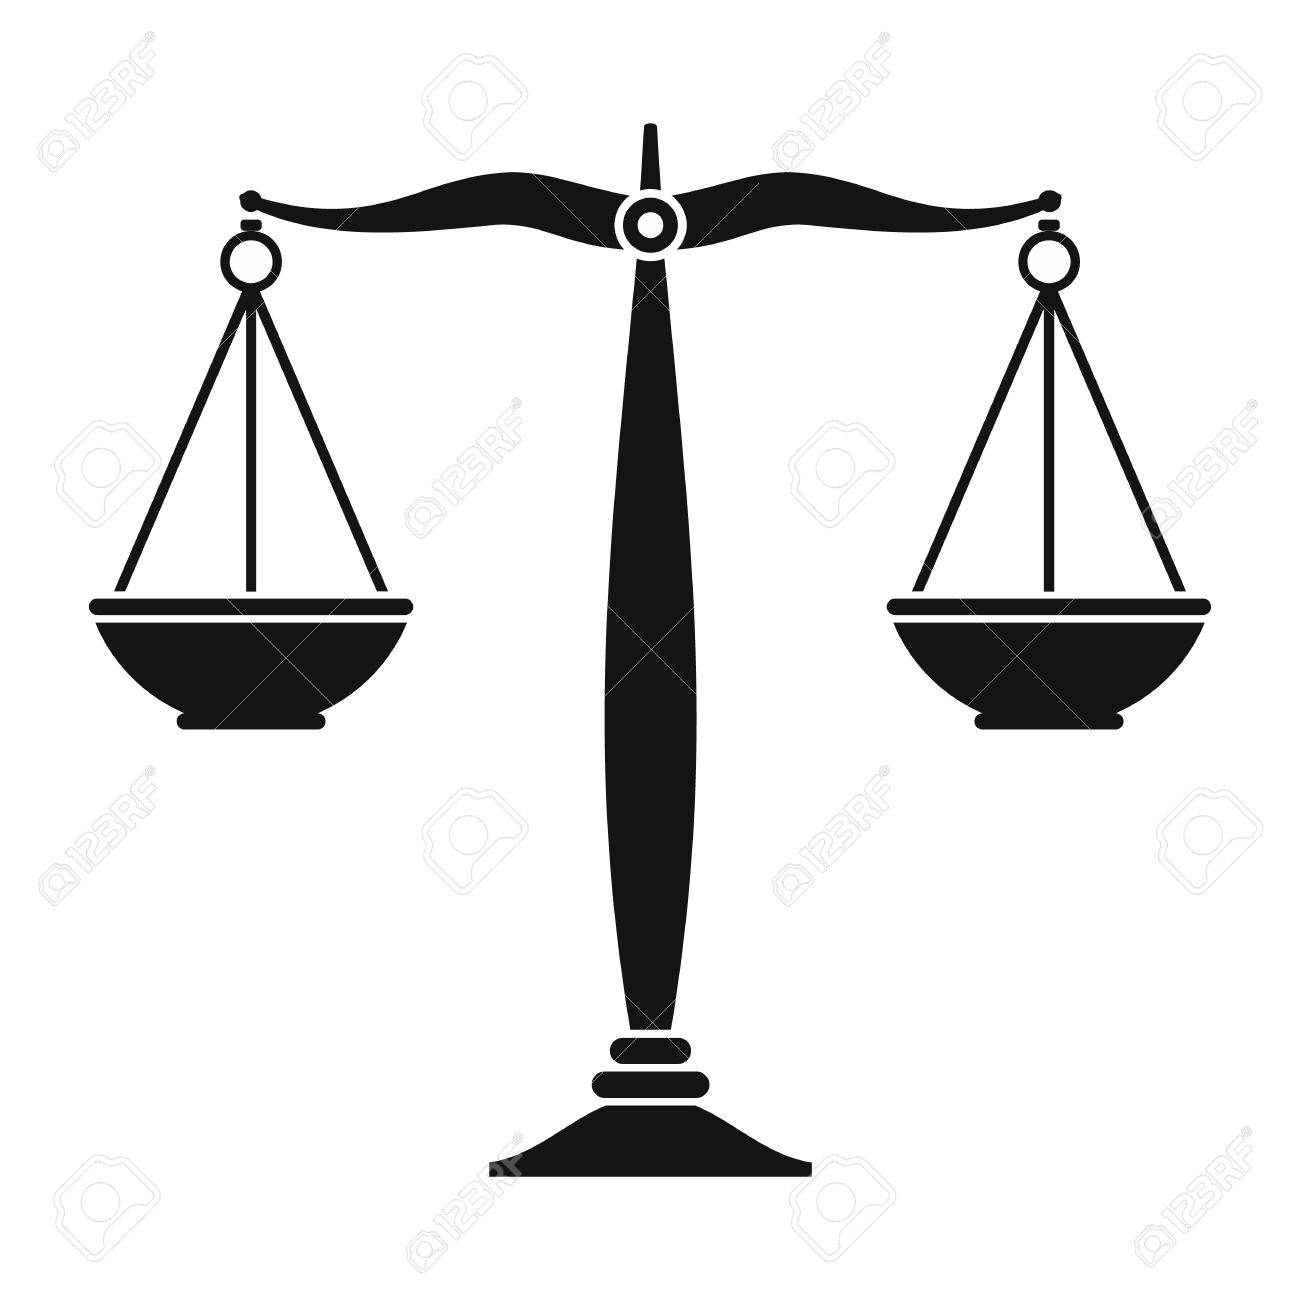 Justice scales black icon. Simple black symbol on a white background - 50342062